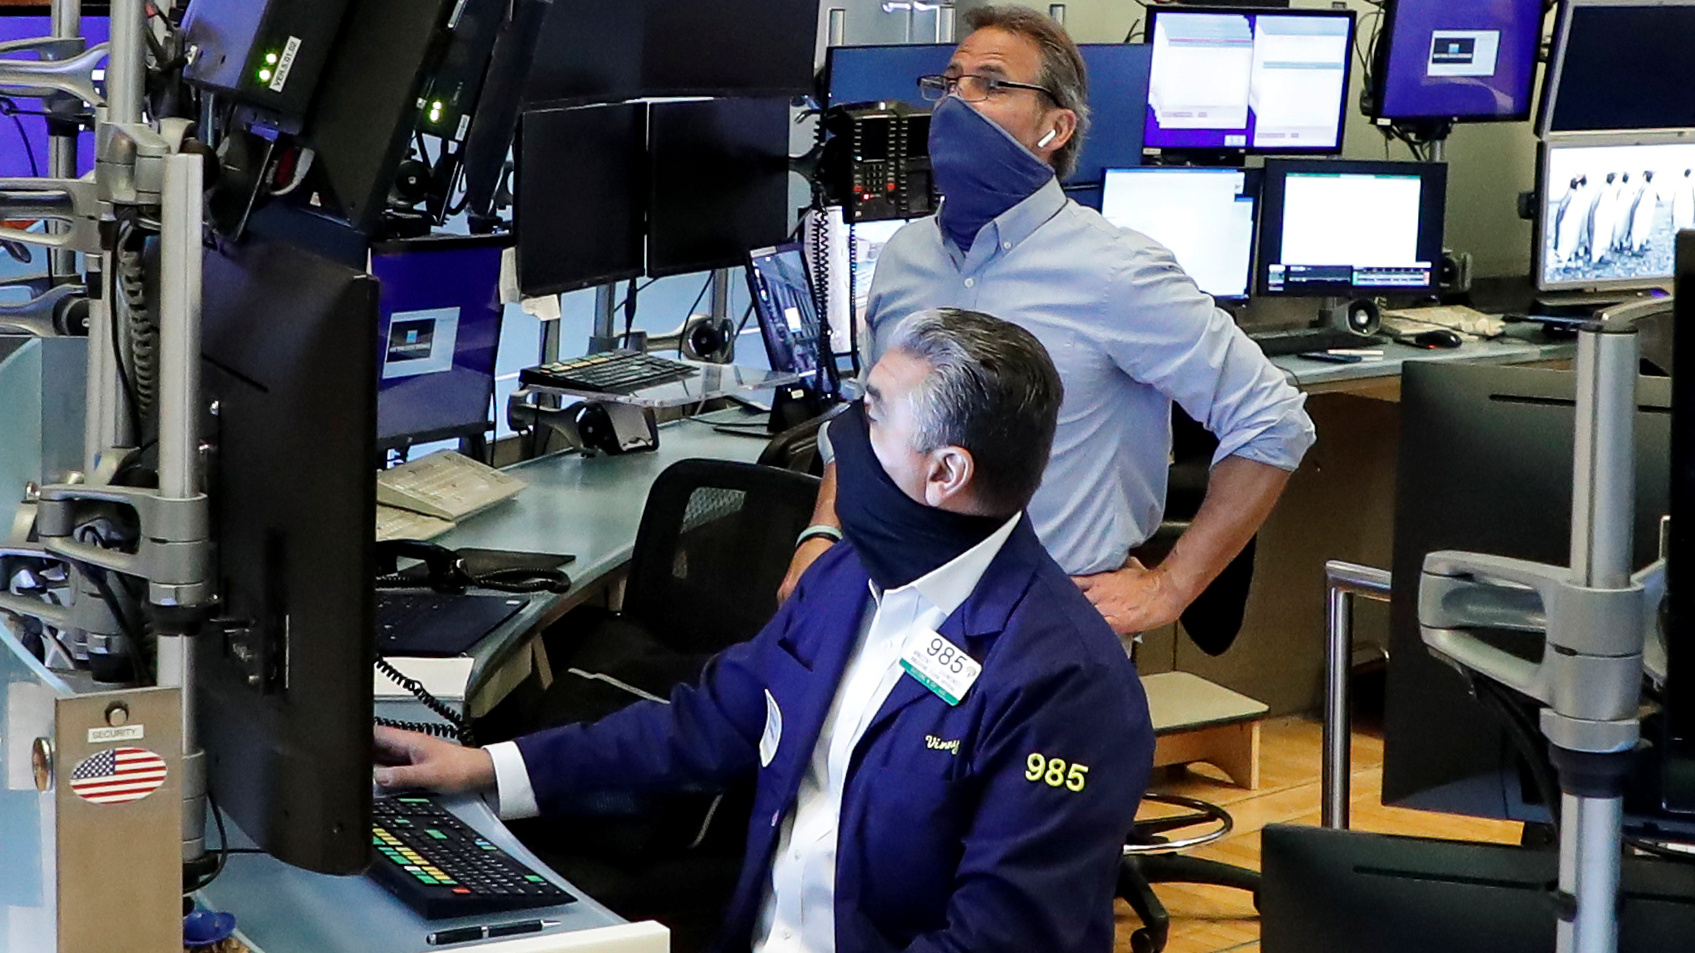 Traders wearing masks work, on the first day of in-person trading since the closure during the outbreak of the coronavirus disease (COVID-19) on the floor at the NYSE in New York